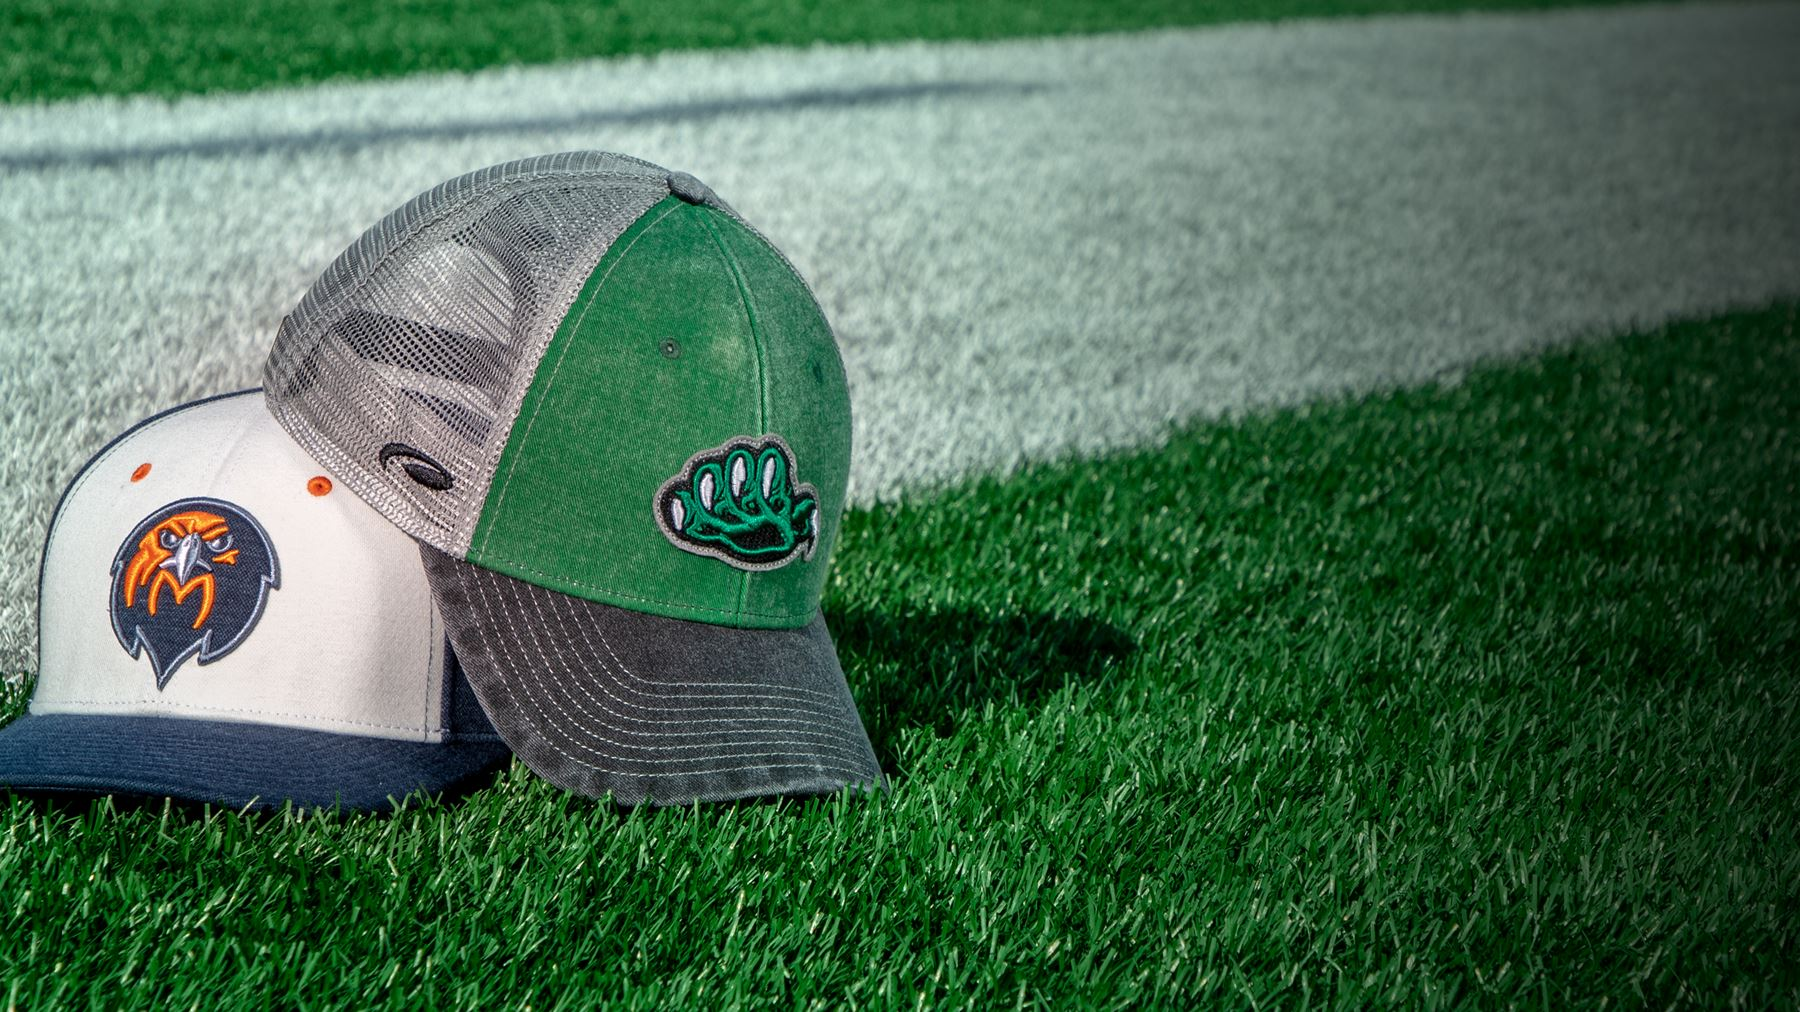 New Releases hats sitting on a football field